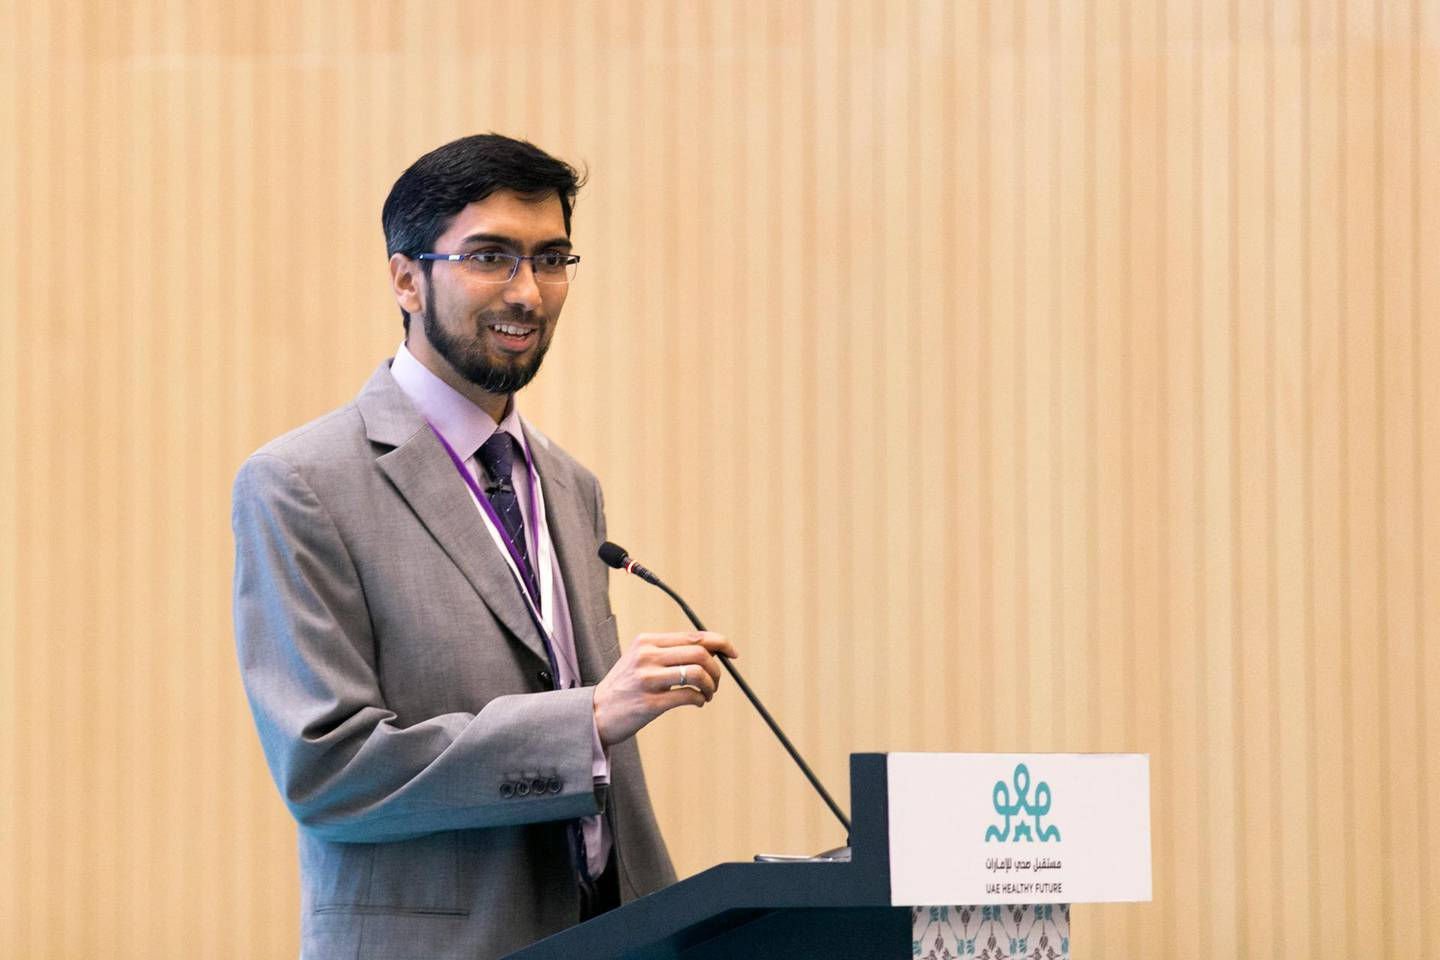 ABU DHABI, UNITED ARAB EMIRATES, 19 FEB 2017.  Dr Raghib Ali, Director of Public Health Research Center, NYU AD, at the UAE Healthy Future Study launch event.  Cardiovascular disease and diabetes are extremely common in the UAE and throughout the Arab World. While cohort studies have made tremendous contributions to scientific knowledge of the epidemiology and determinants of diabetes, cardiovascular disease and cancer, none have been done in Arab populations. To study the causes of these diseases and other diseases common to Emirates, NYU's Public Health Research Center has established a prospective cohort study, the UAE Healthy Future Study.  The UAE Healthy Future Study has been established in 2015 as the first national study in the United Arab Emirates aimed at understanding the risk factors of heart disease, obesity and diabetes with a representative sample of 20,000 UAE national men and women making up its study participants.  The study is conducted in collaboration with a number of leading hospitals and universities. NYU Abu Dhabi (NYUAD) and the NYU School of Medicine are collaborating with SEHA Ð The Abu Dhabi Health Services company (including Sheikh Khalifa Medical City and the Abu Dhabi Blood Bank), Zayed Military Hospital, United Arab Emirates University, Zayed University, Khalifa University, EBTIC, Al Ain Regional Blood Bank and Cleveland Clinic Abu Dhabi.  Photo: Reem Mohammed / The National (Reporter: Shireena Al Nuwais / Section: NA) ID 43825 *** Local Caption ***  RM_20170219_NA_HEALTH_002.JPG